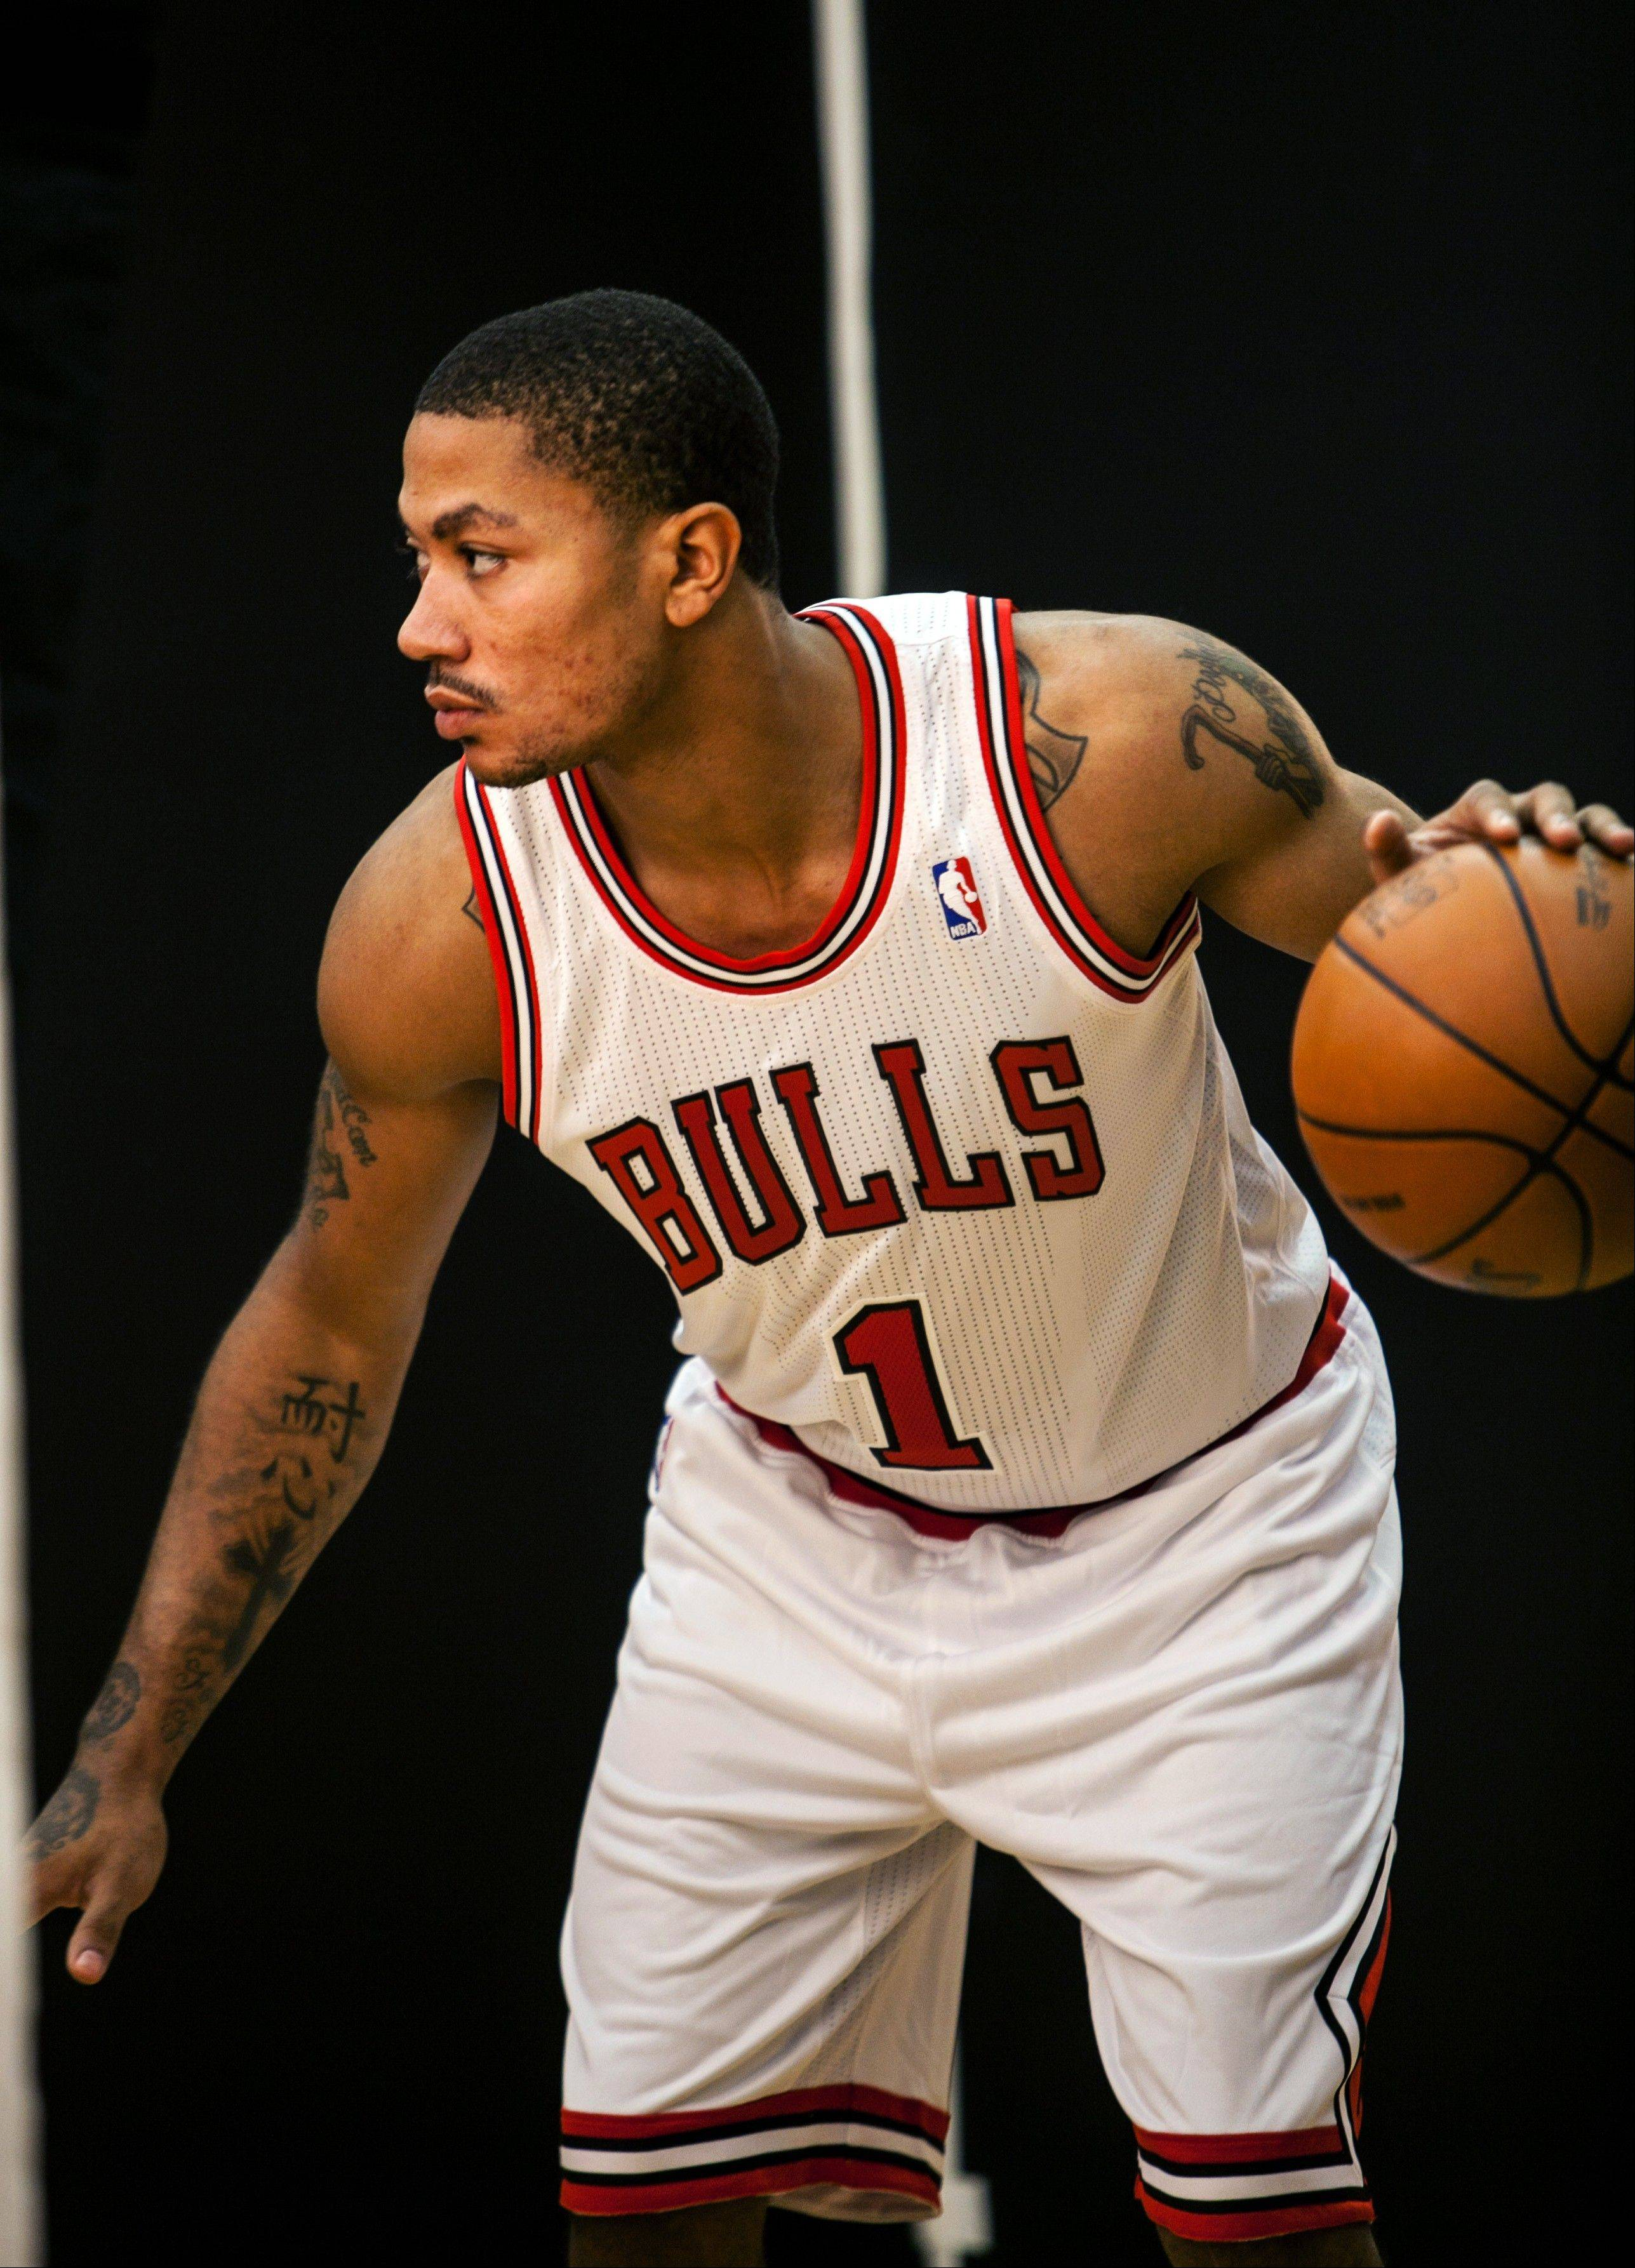 The Bulls' Derrick Rose poses for pictures during the NBA basketball team's media day Monday in Deerfield.